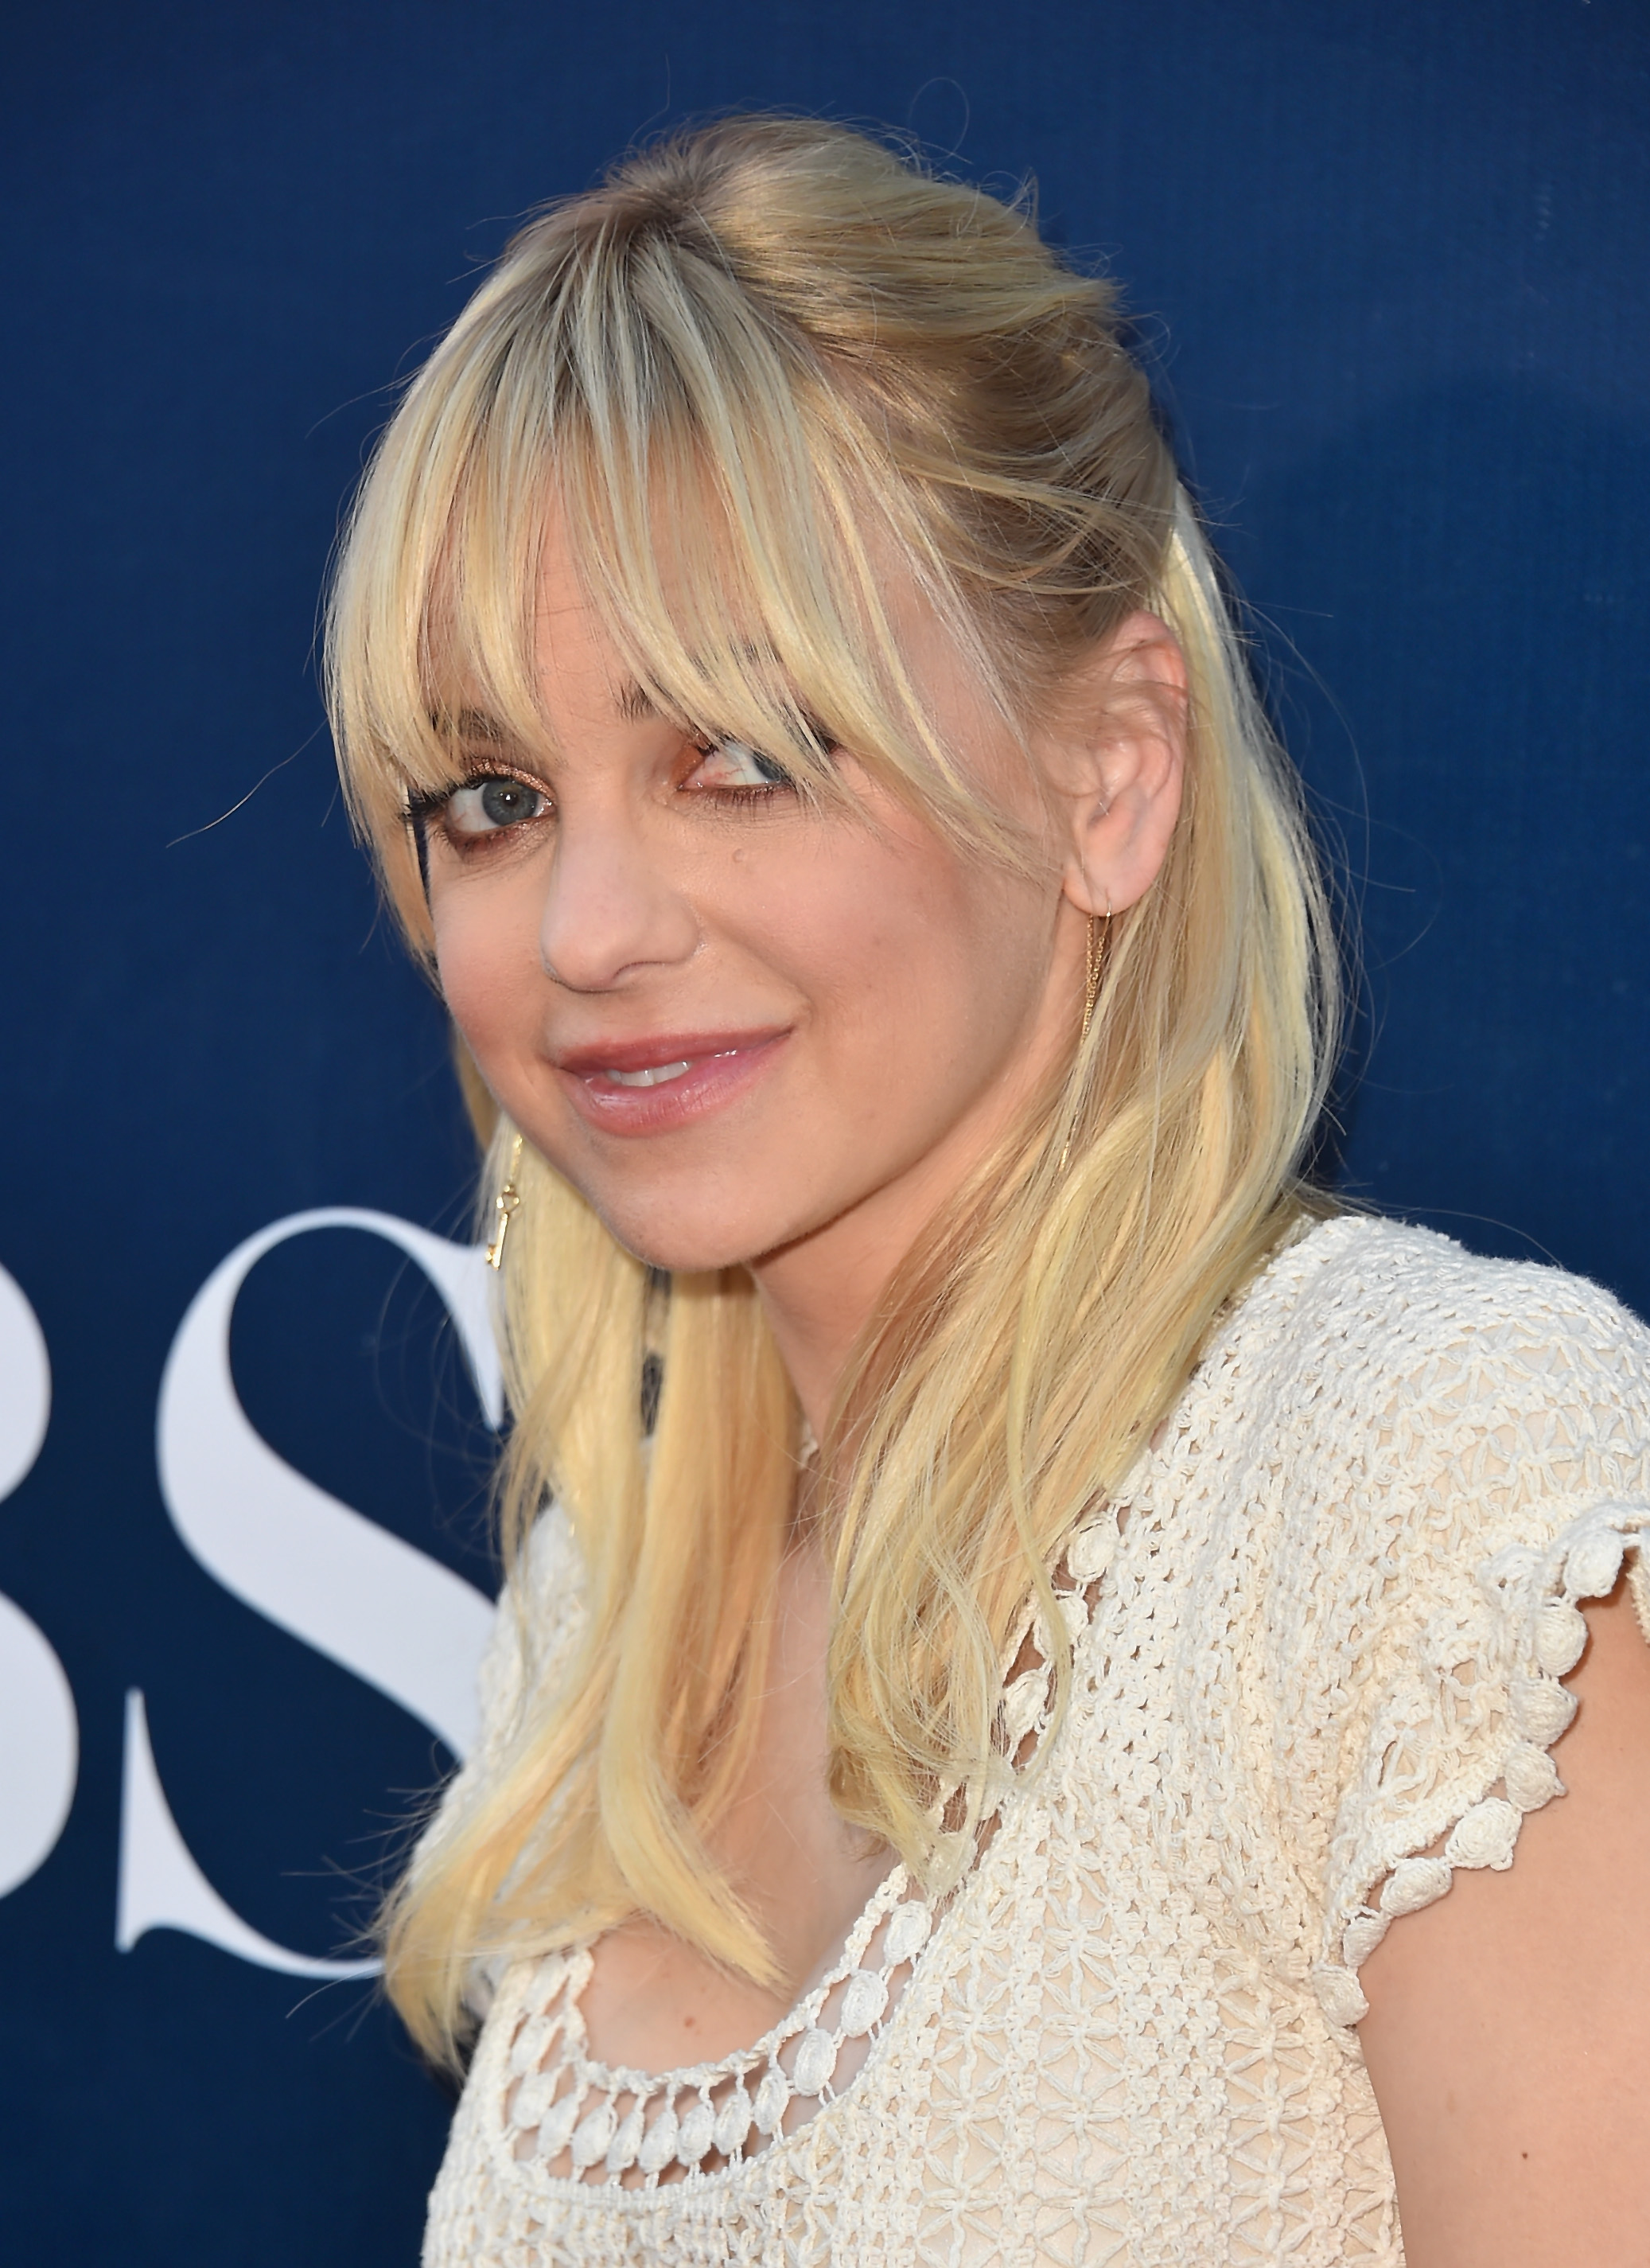 Why Anna Faris doesn't get many movie offers anymore